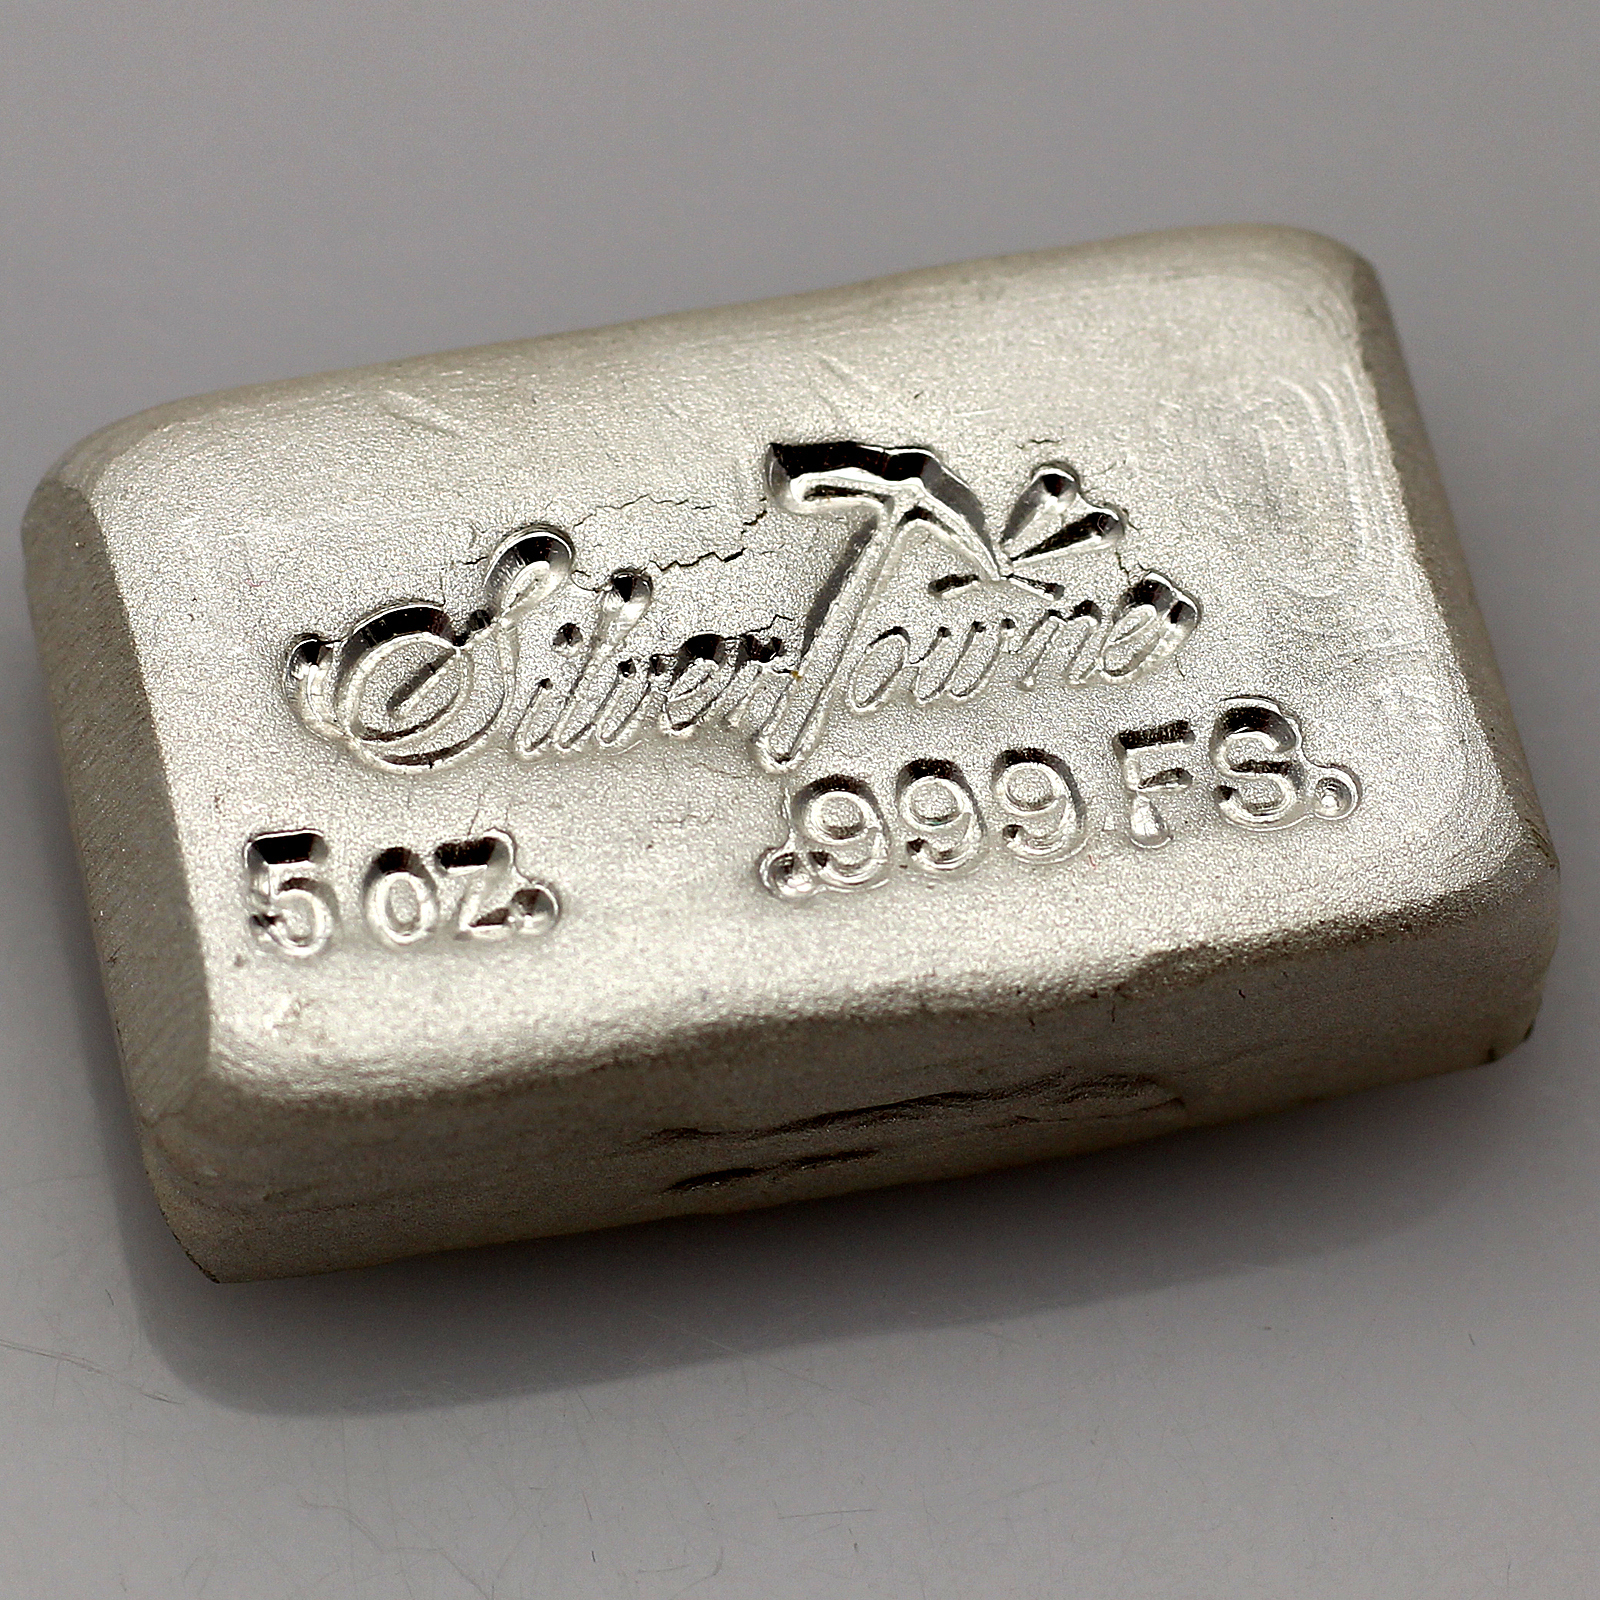 Silvertowne Hand Poured 5oz 999 Fine Silver Bar Ebay